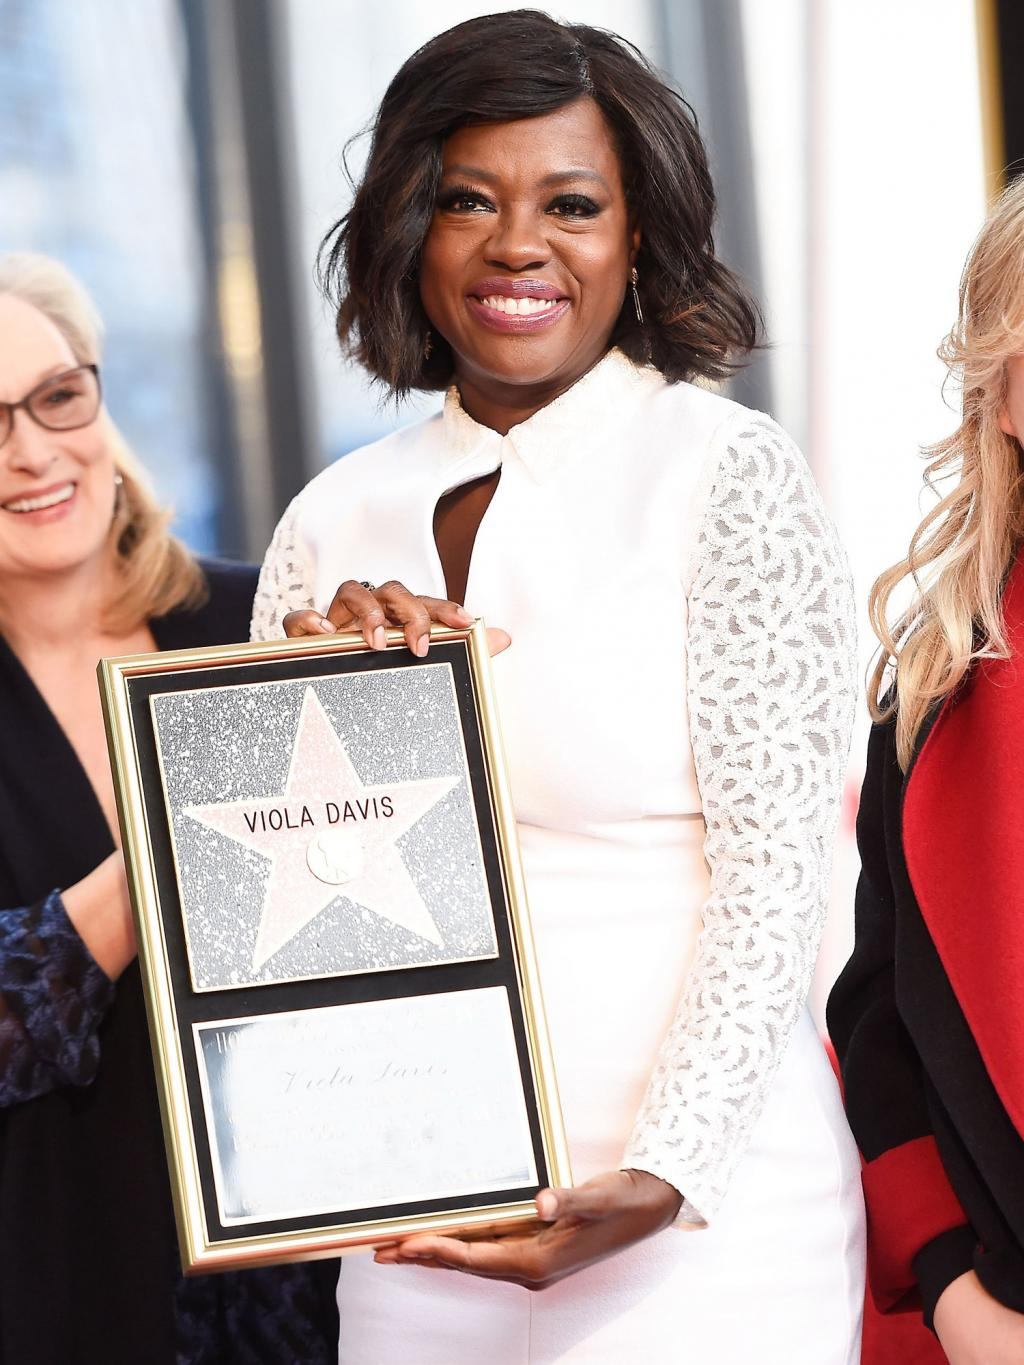 Viola Davis Remembers Her Dad During Emotional Walk of Fame Speech: 'I Wish He Were Here'